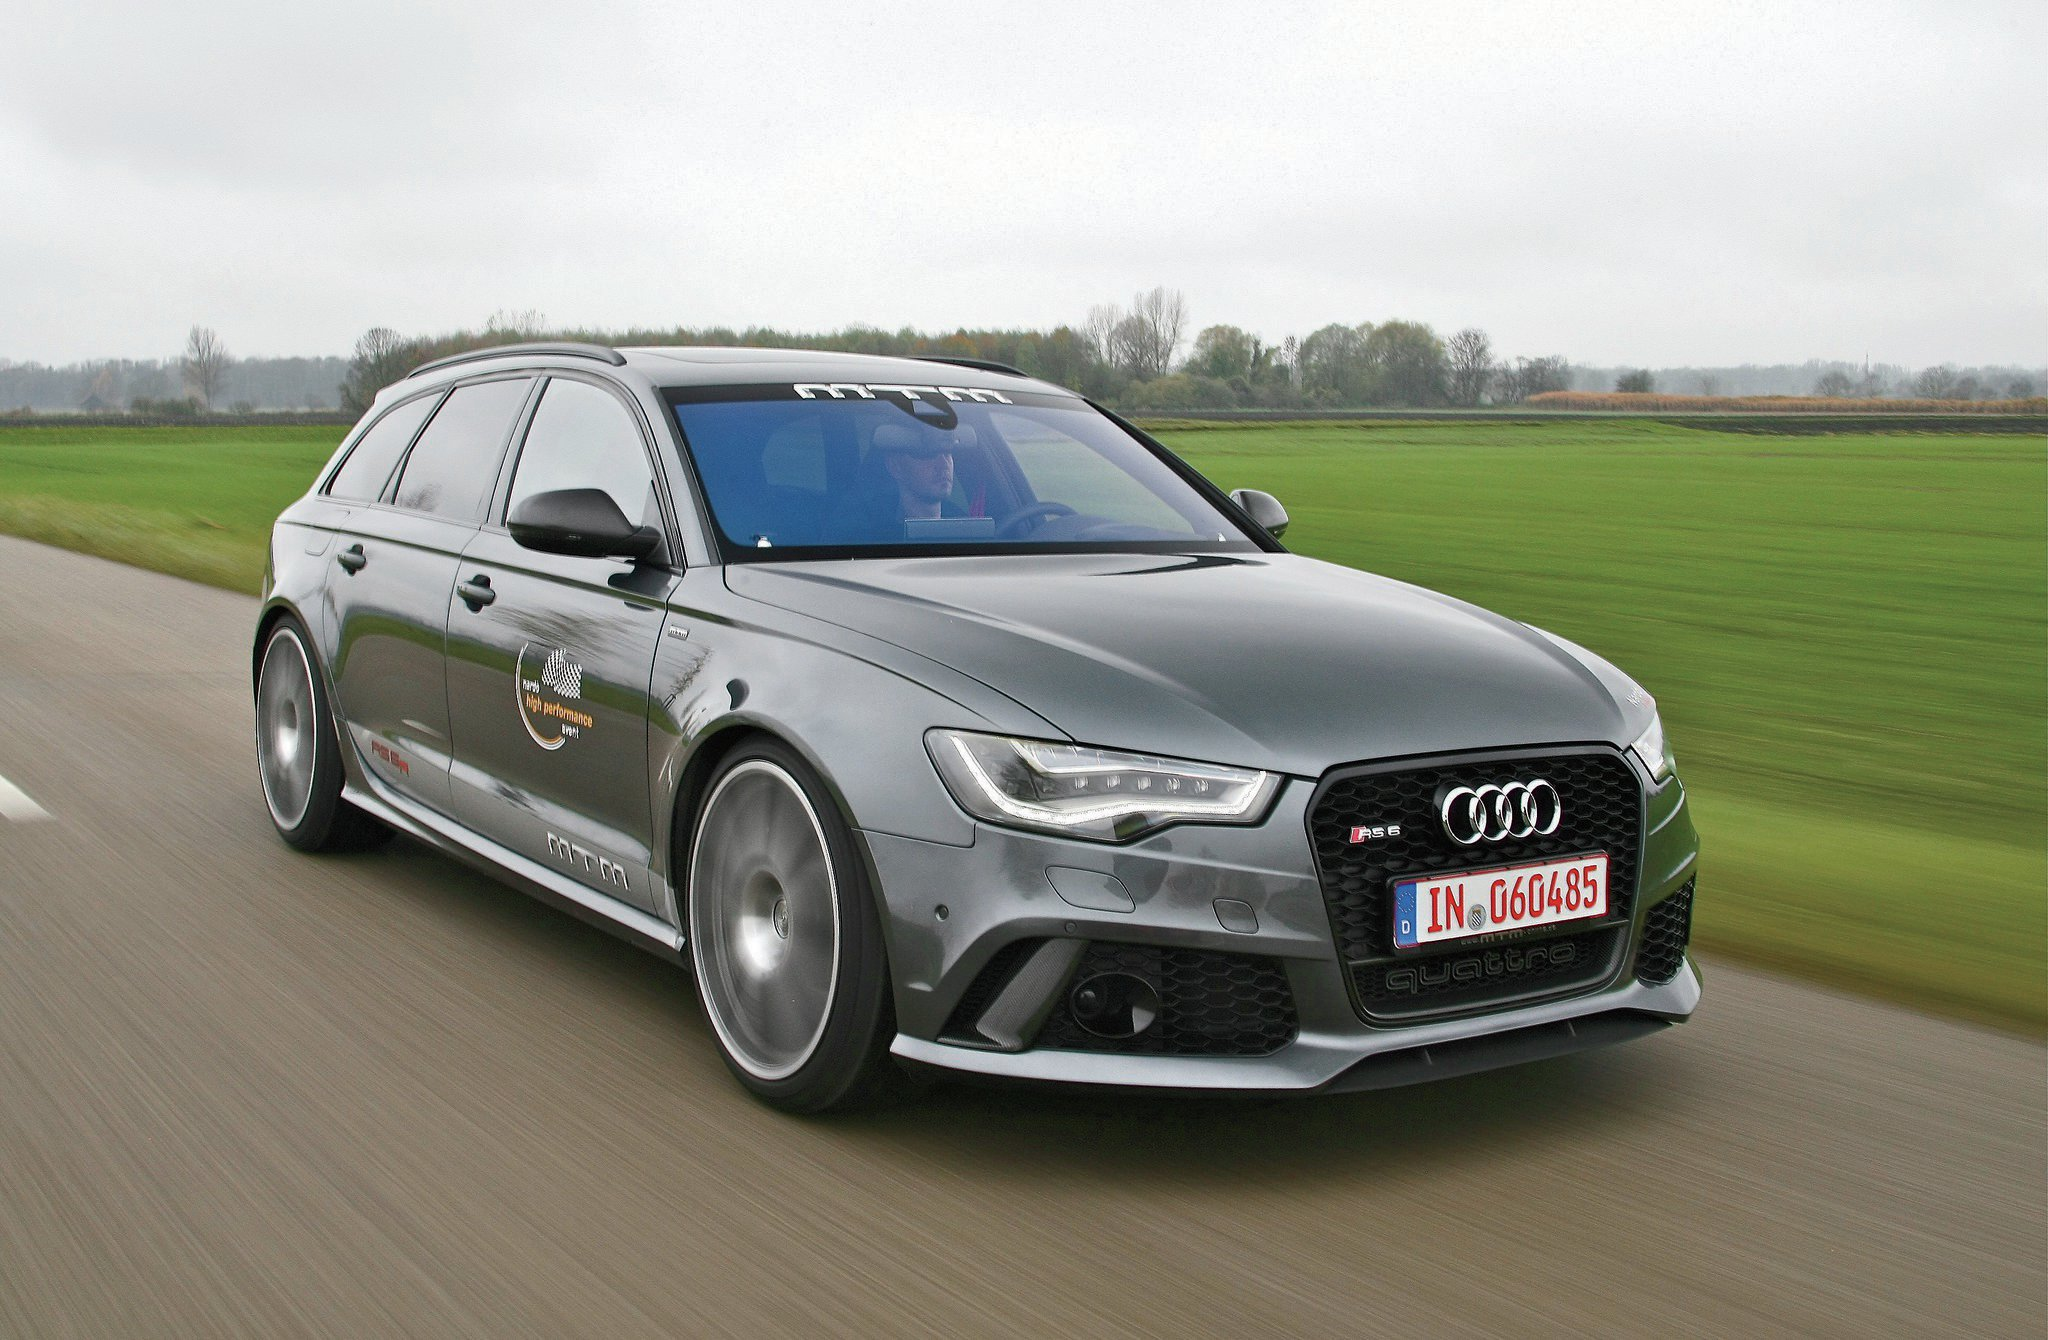 MTM Builds a 700-HP, 211-MPH Audi RS6 Wagon